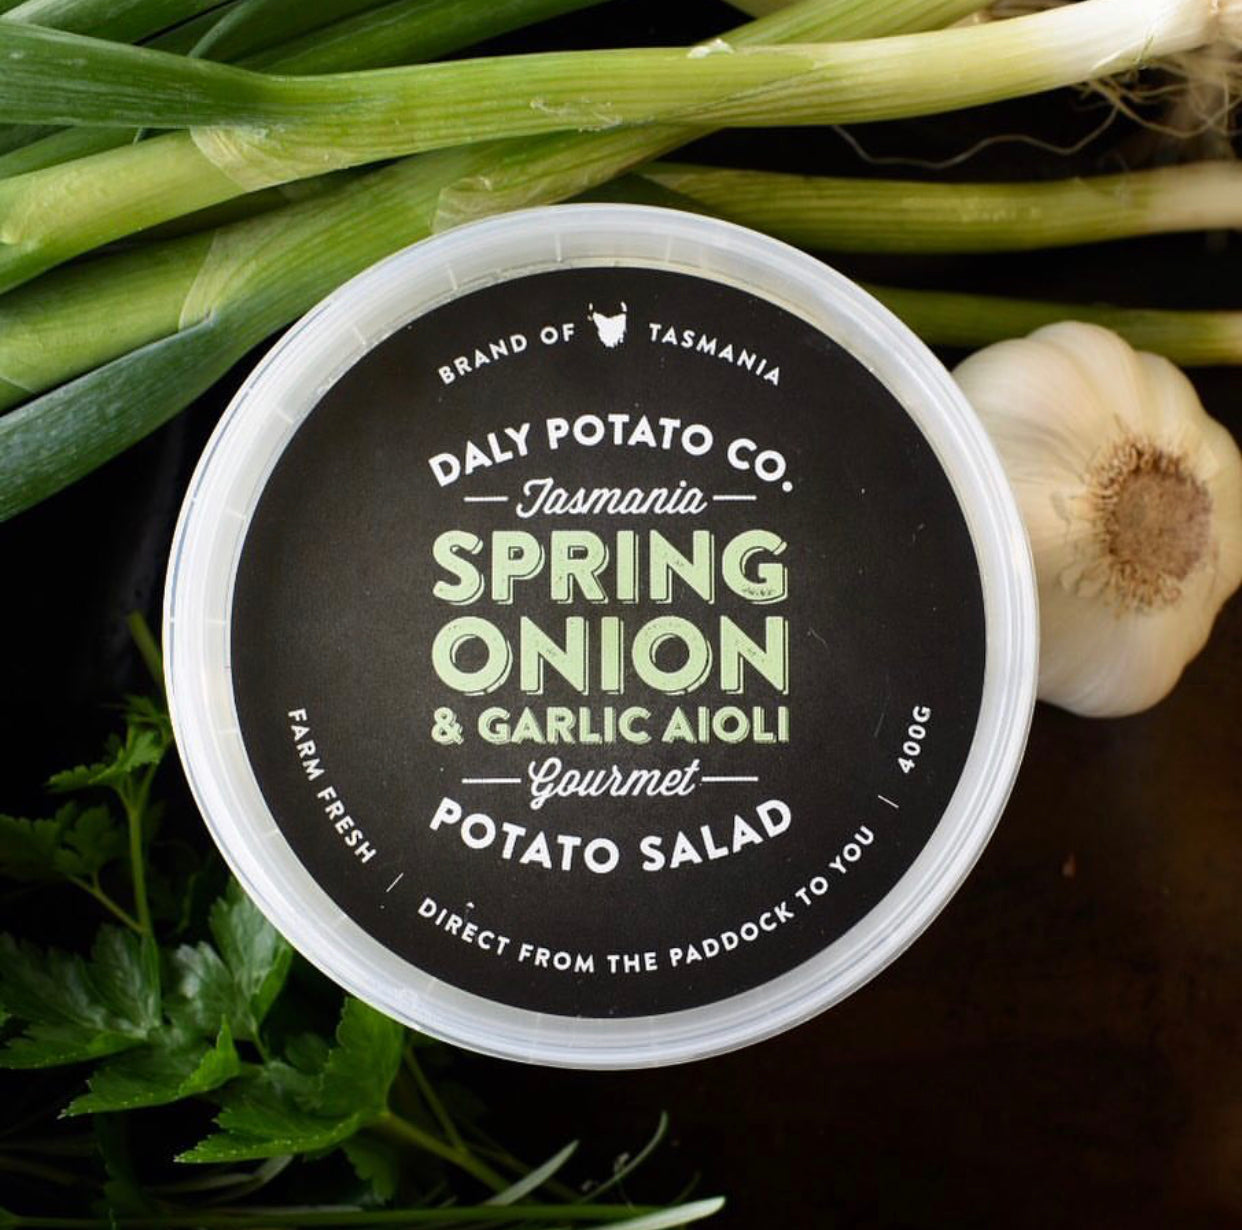 Spring Onion & Garlic Aioli Potato Salad